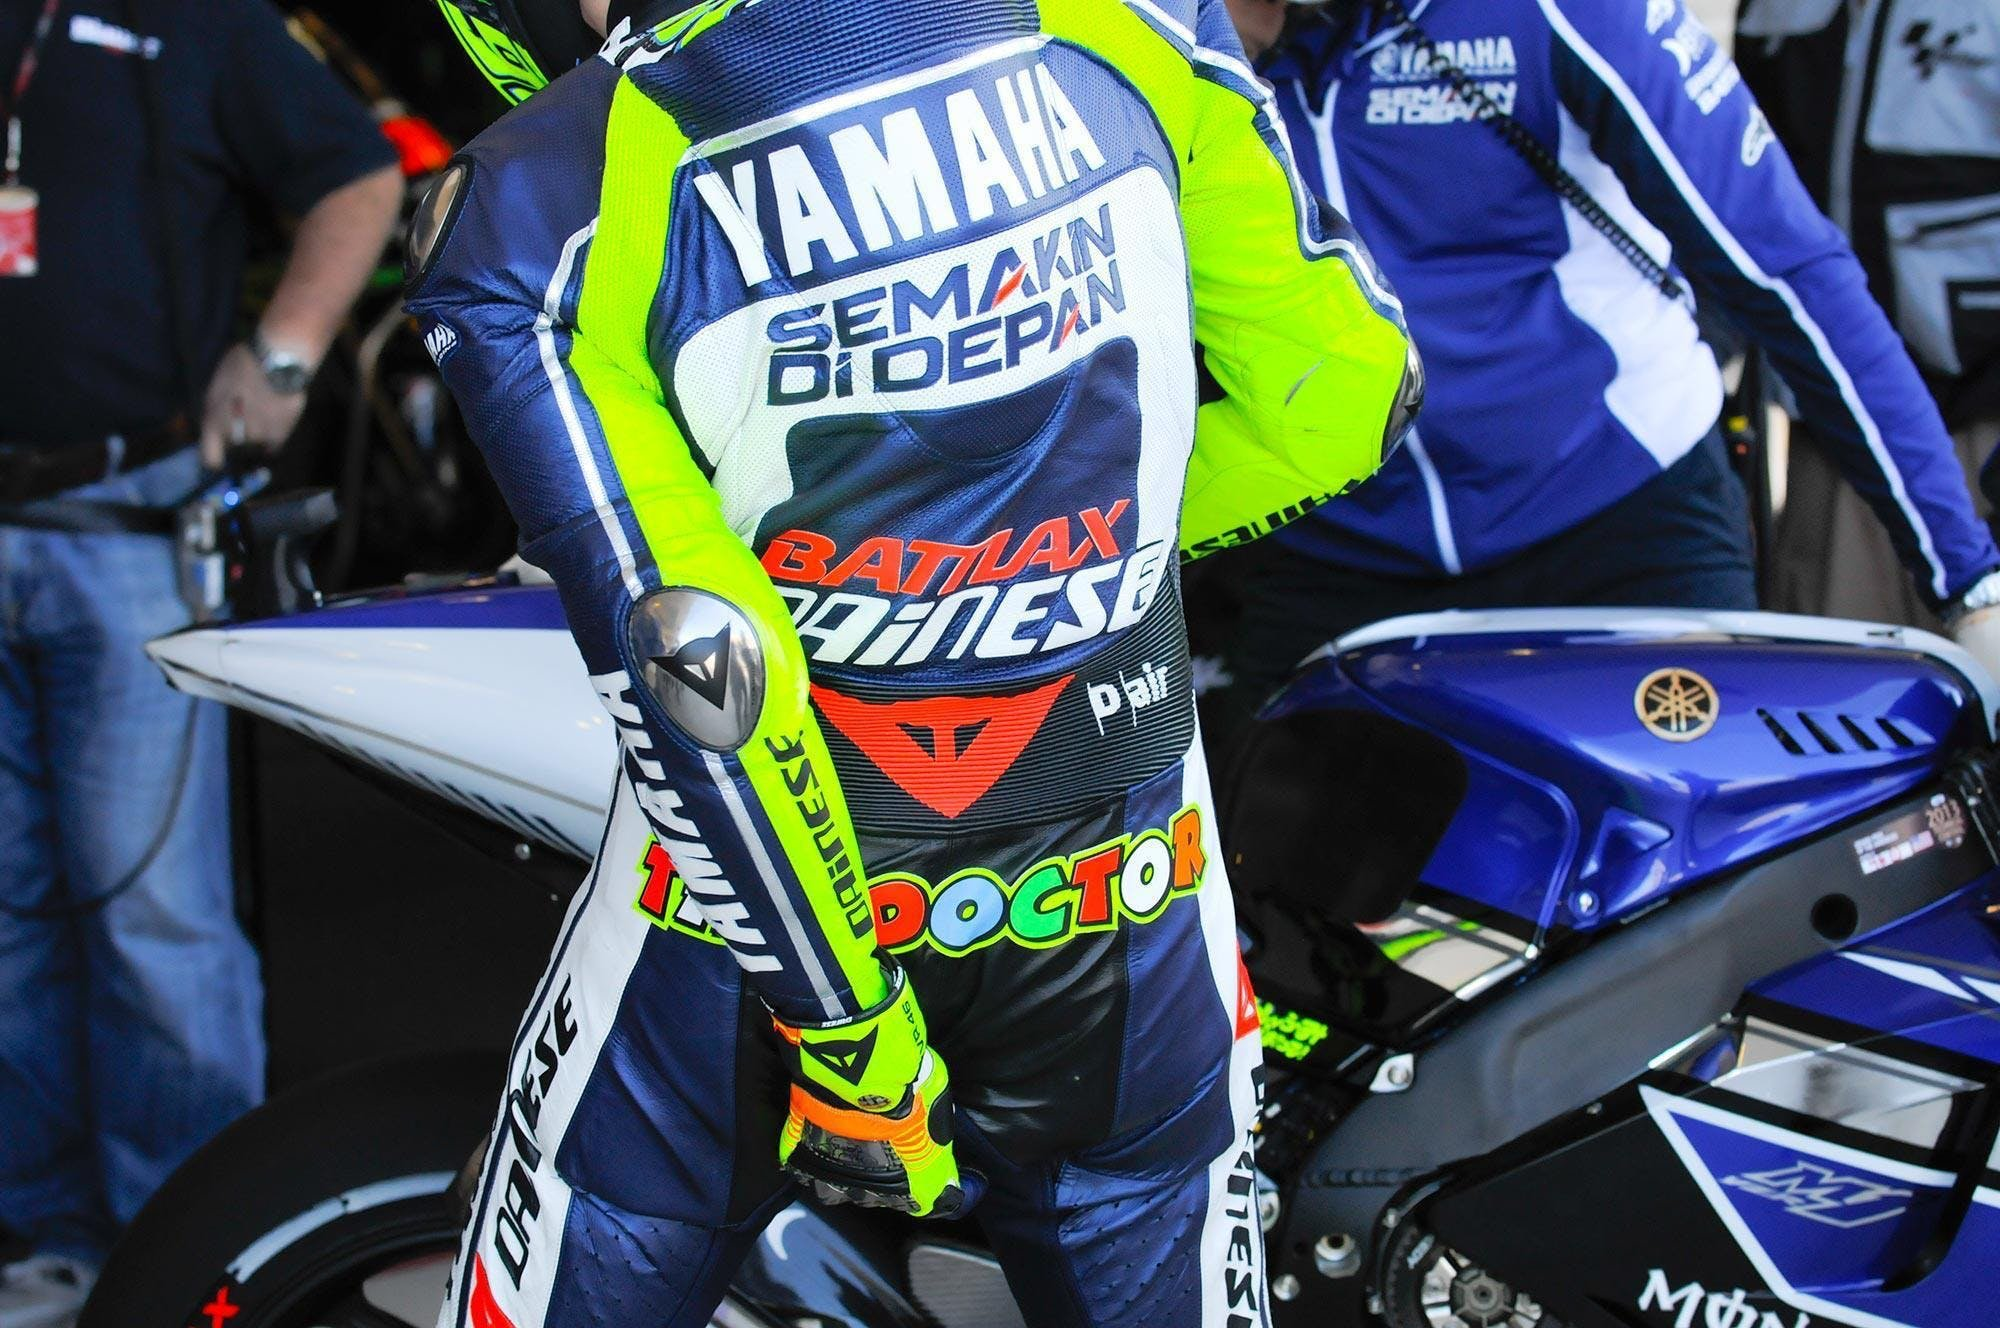 Rossi pulling at his leathers